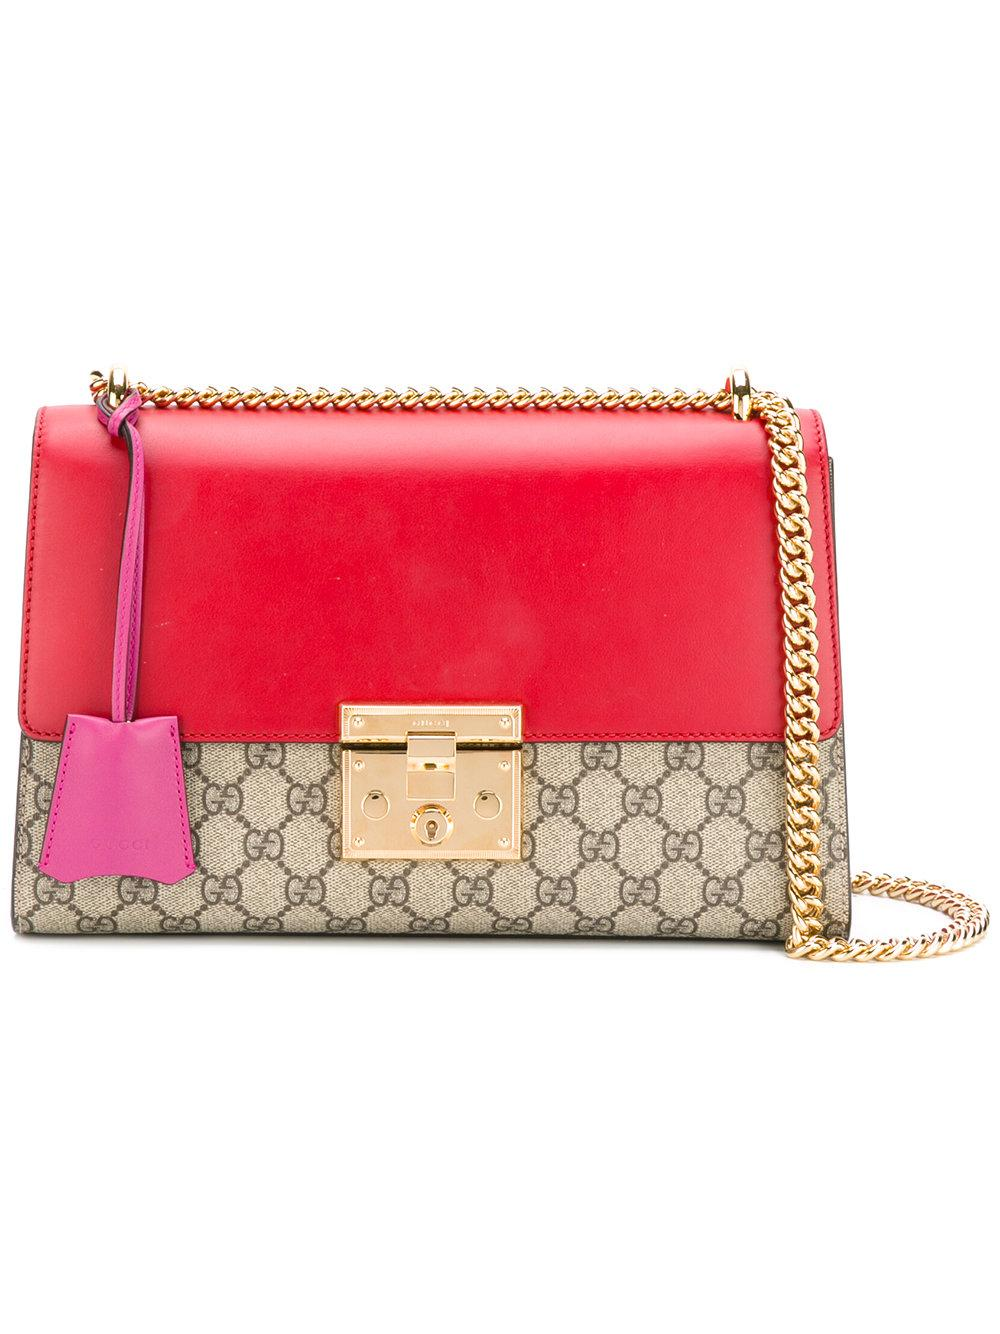 4fe54dde1df Lyst - Gucci Padlock Gg Supreme Shoulder Bag in Red